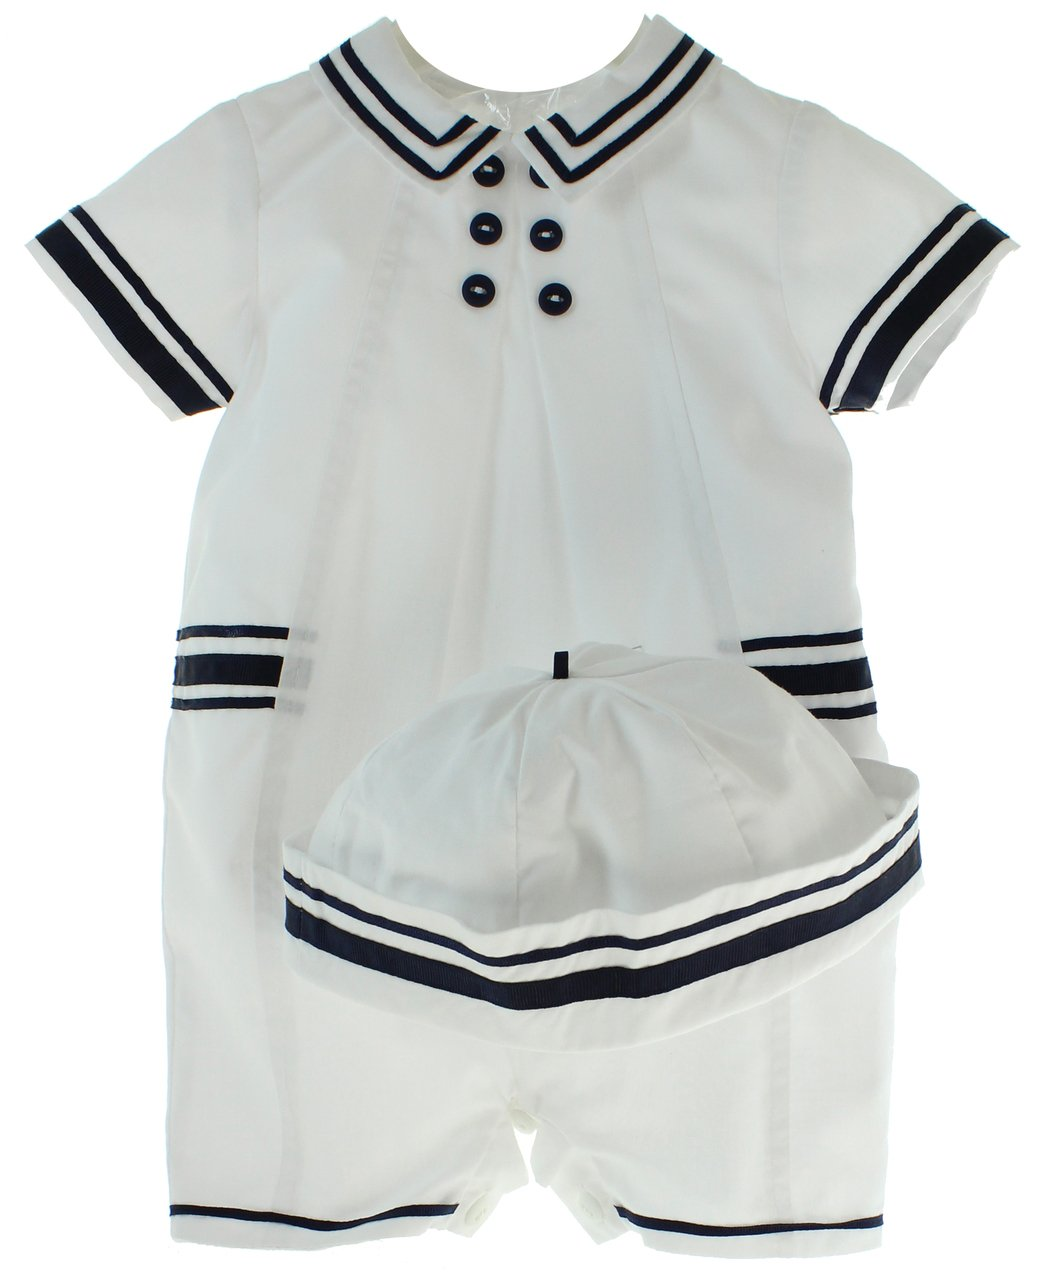 1388068b0235 Boys Sailor Romper Outfit Hat Navy White Nautical Baby Clothes 3M